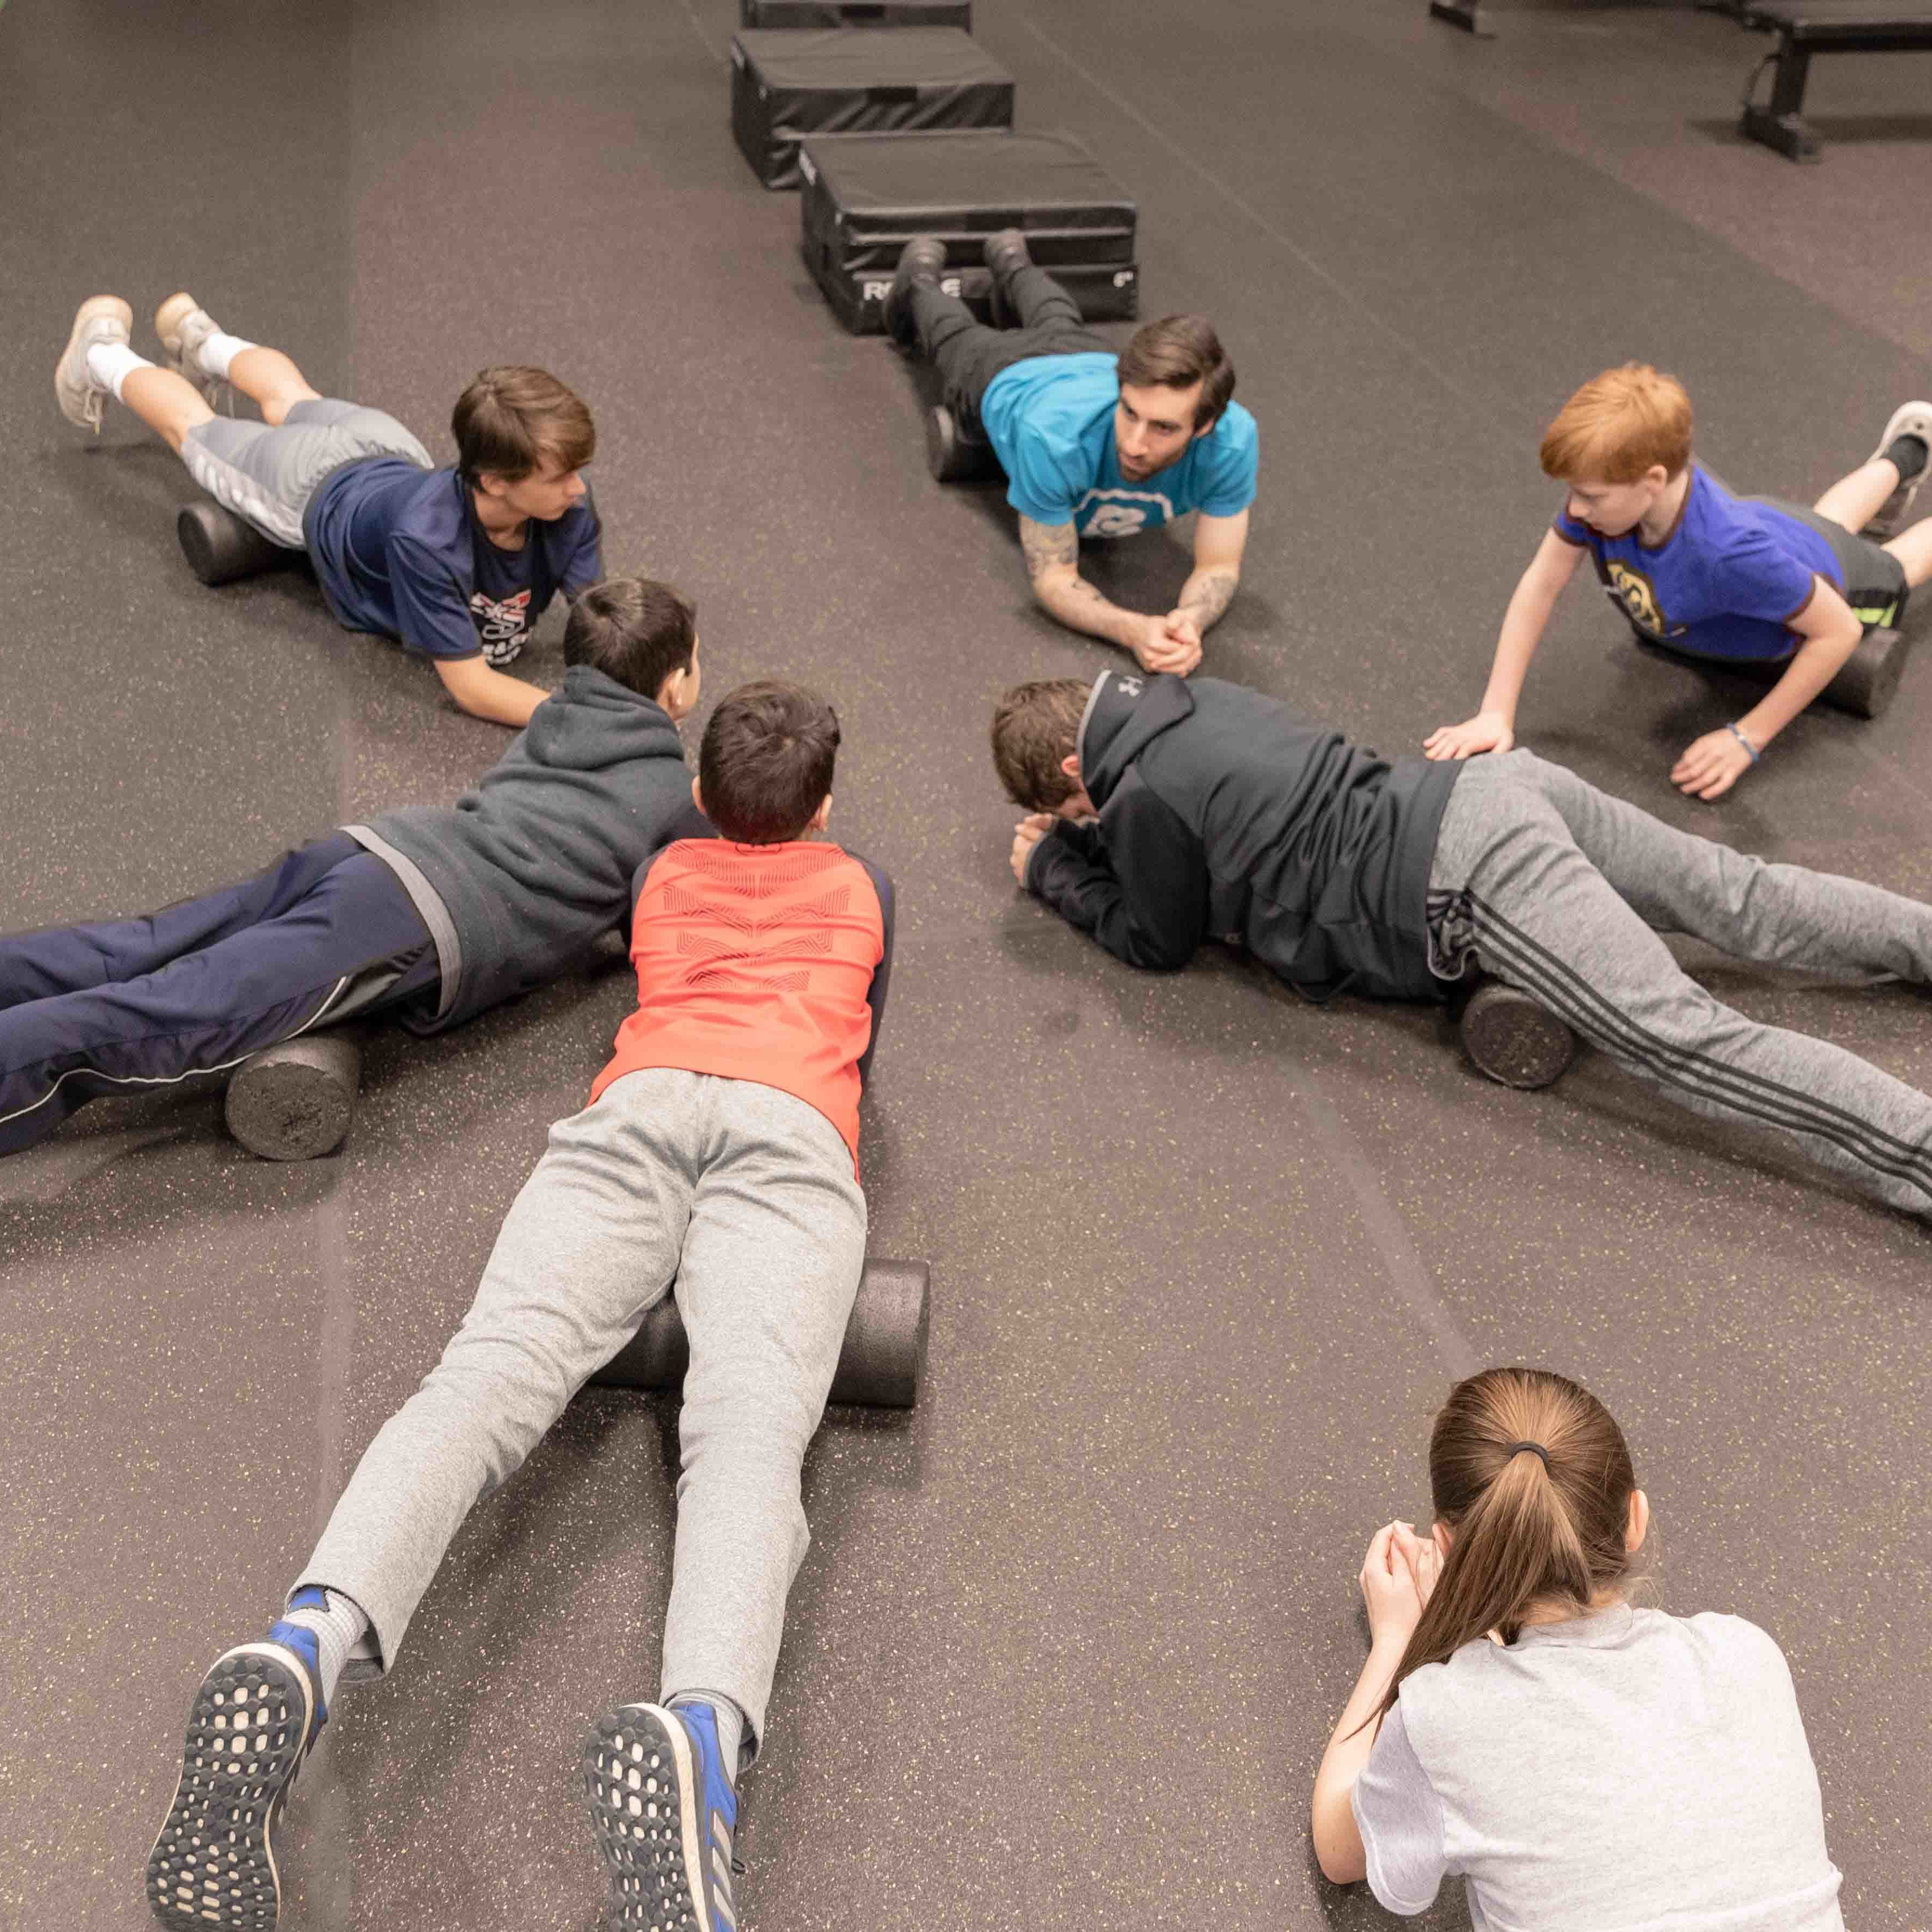 Athletic Development workout for kids_Bent On Better personal training in West Chester PA _rolling